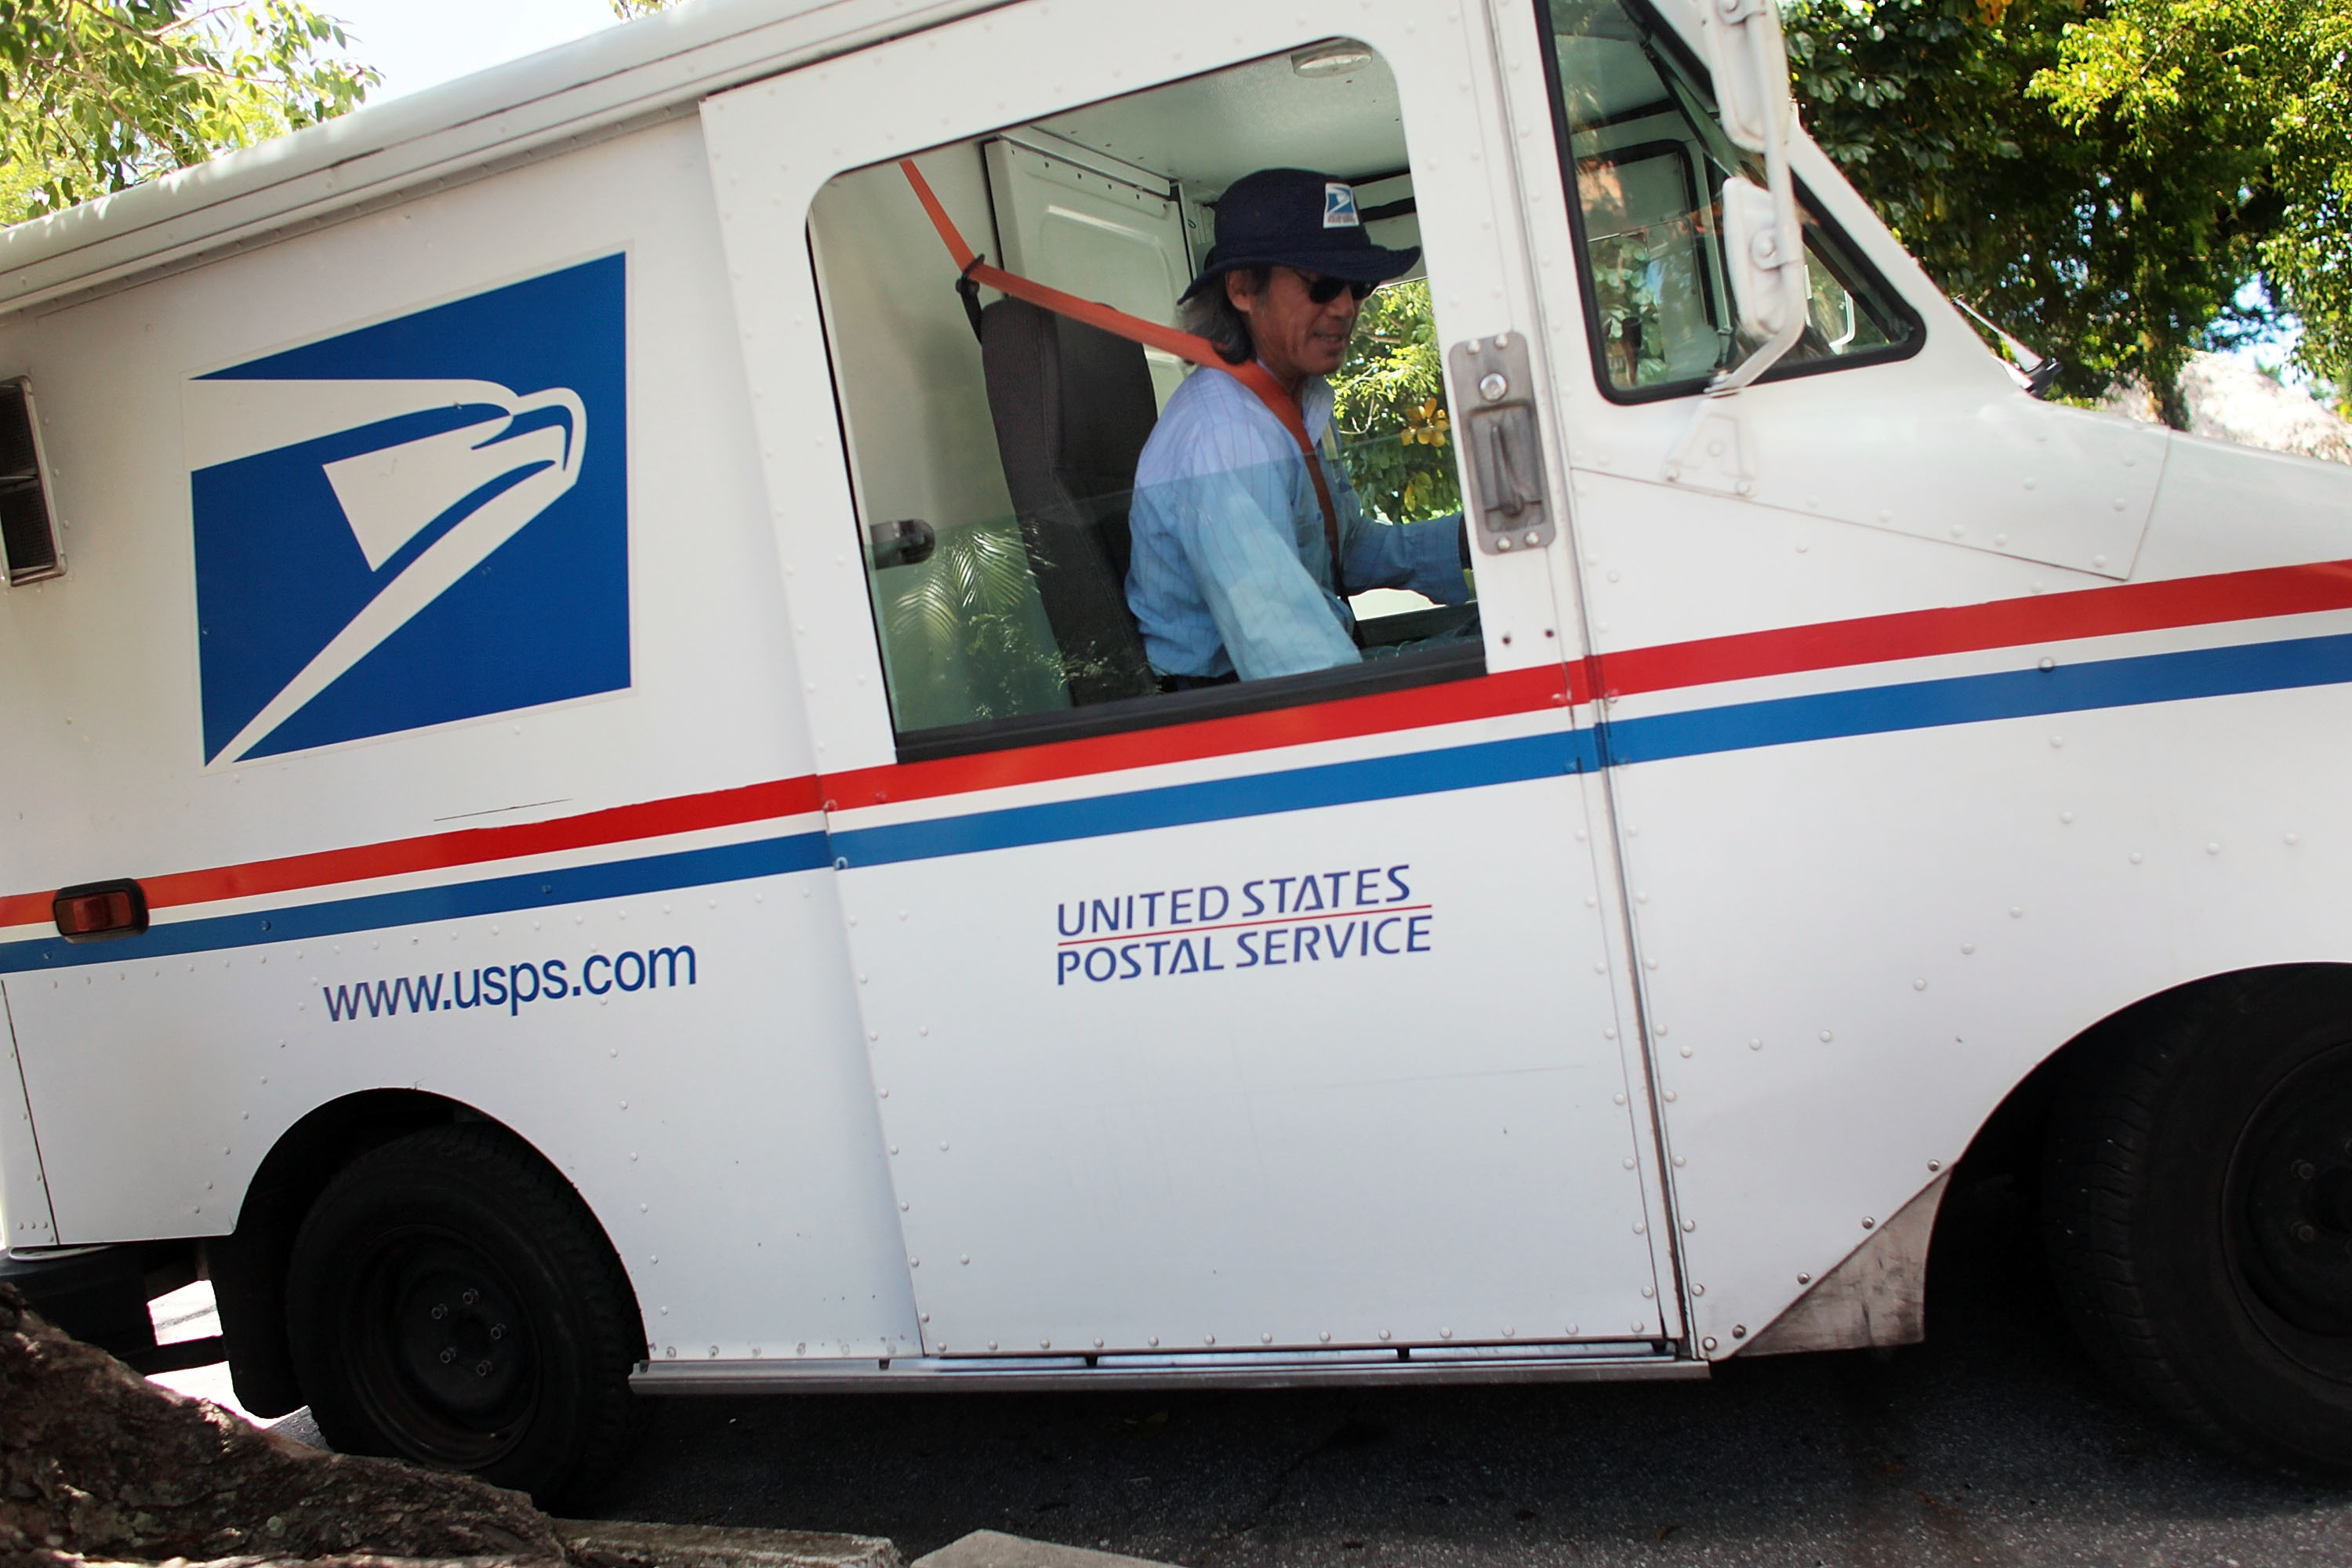 ecf07399f Cash-strapped USPS may cut 120